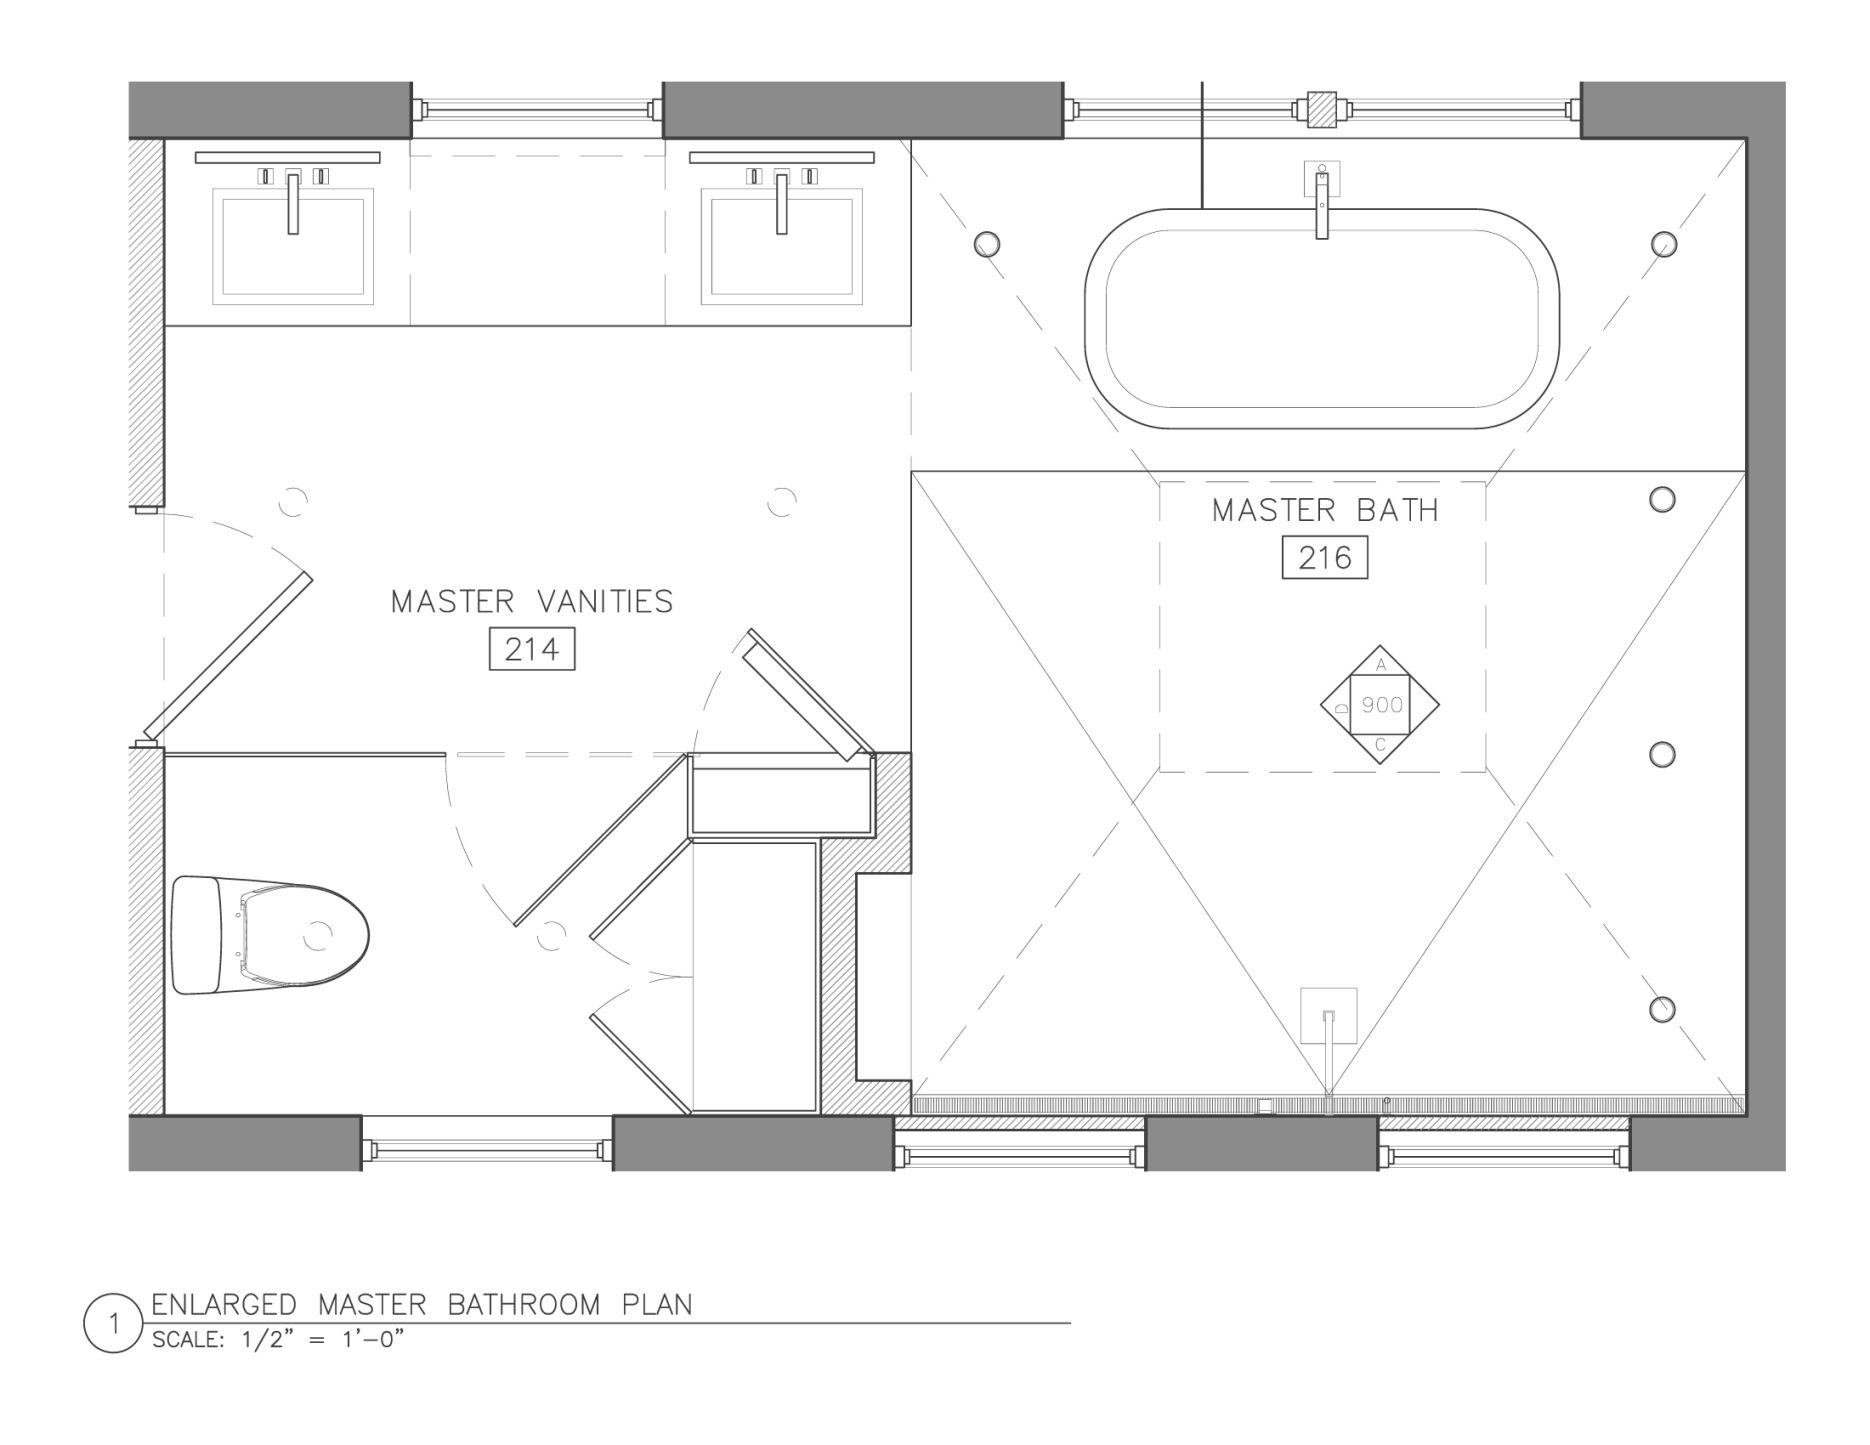 Best Kitchen Gallery: Awesome Ideas Bathroom Floor Plans 8 X 12 7 X Master Bath Layout For of 7 X 12 Bathroom Layout on rachelxblog.com